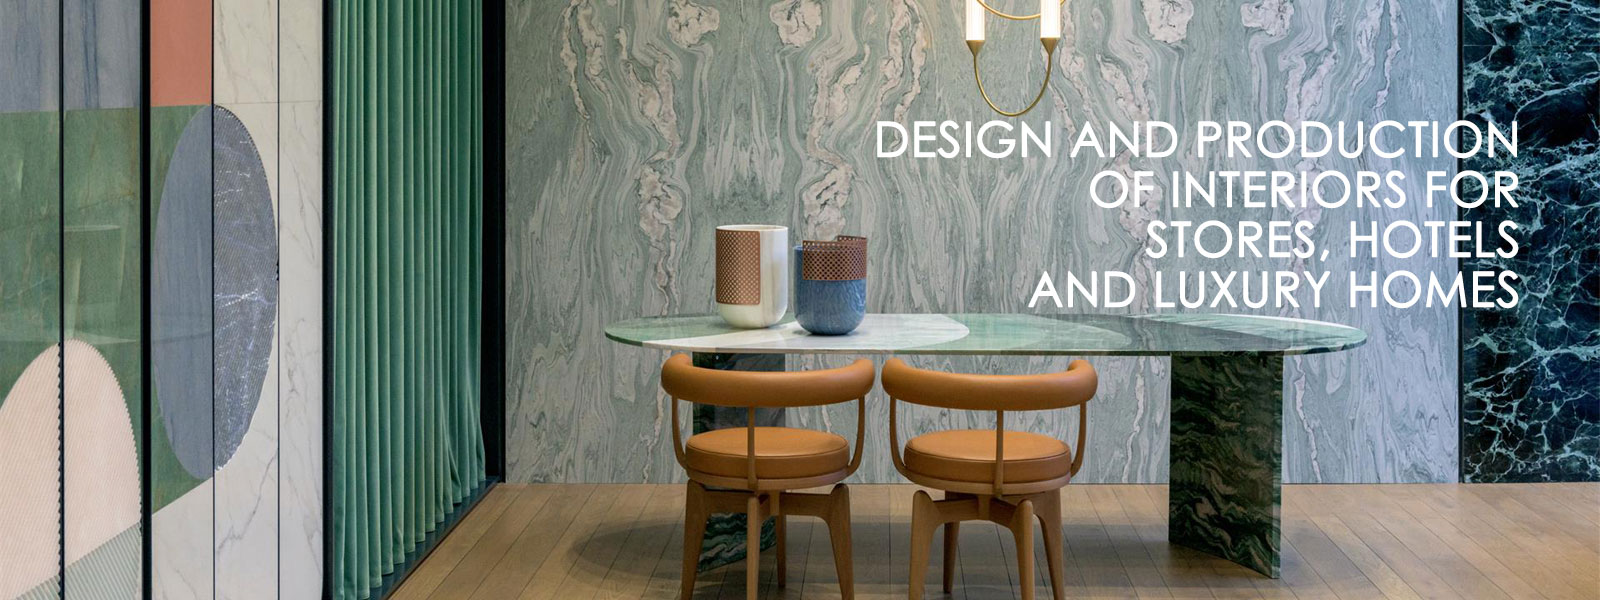 Design and production of interiors for stores, hotels and luxury homes